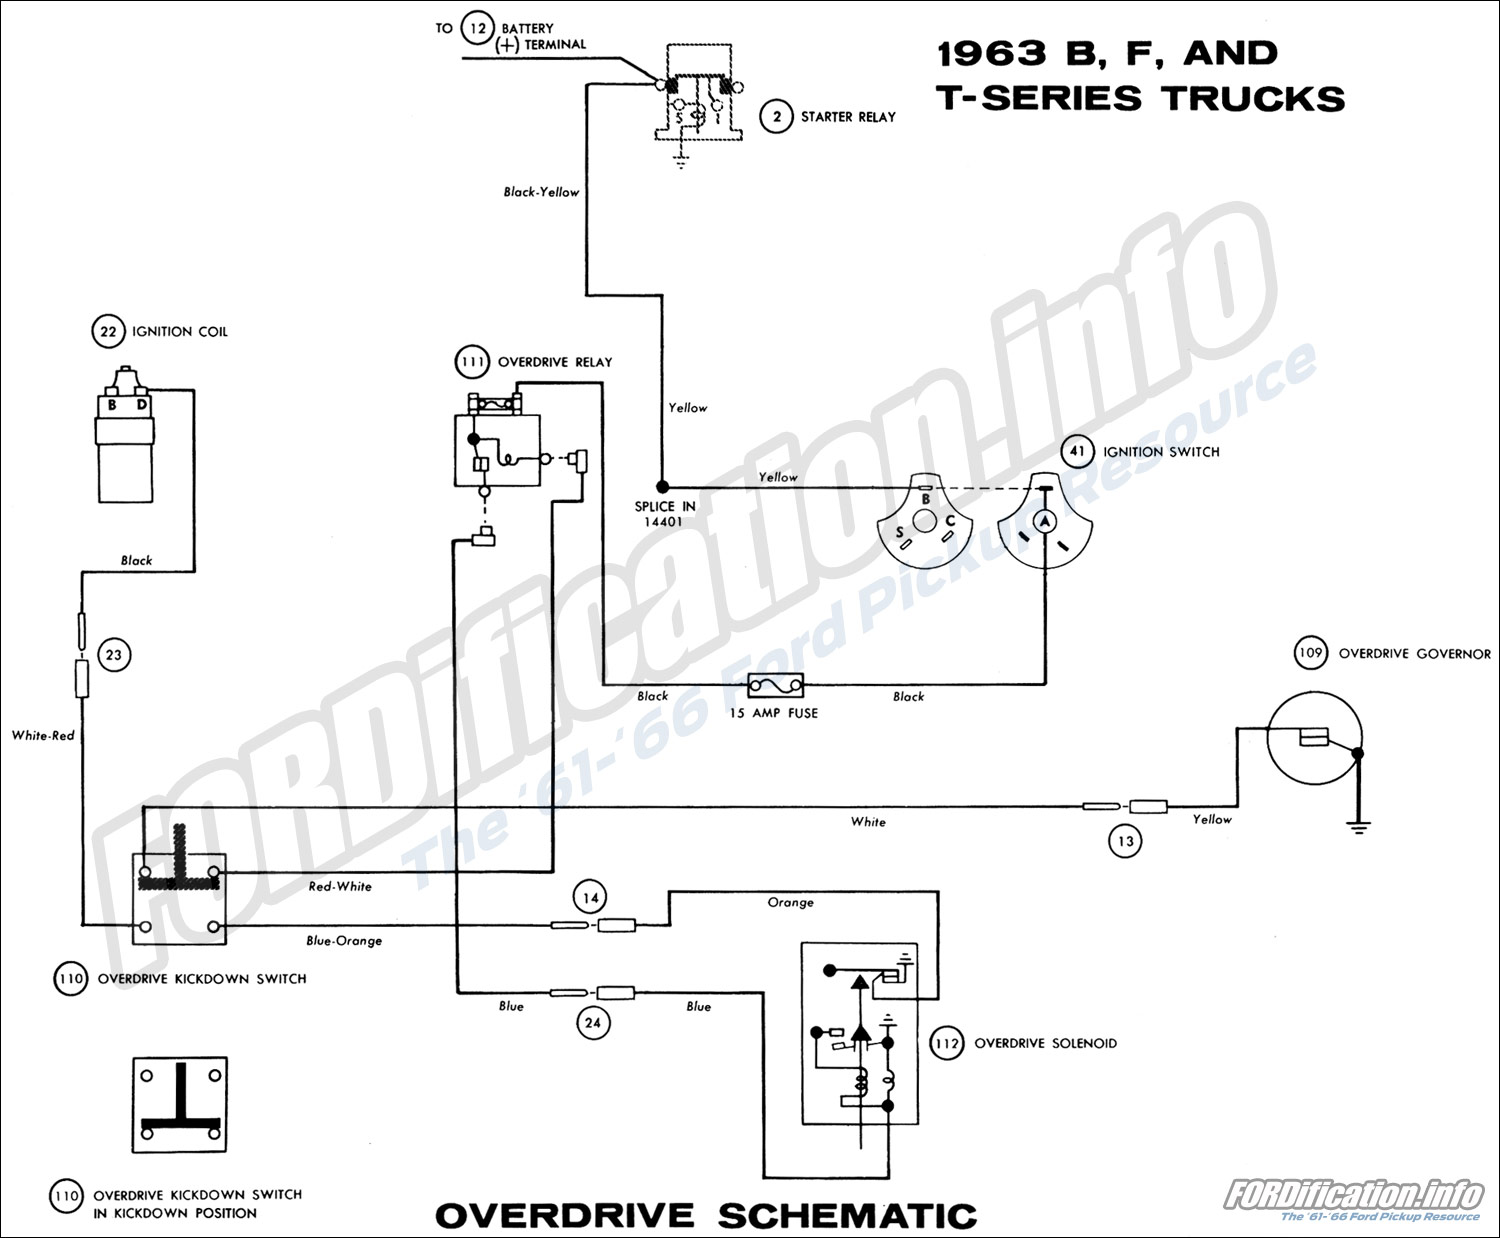 1955 Thunderbird Overdrive Wiring Diagram Library Borg Warner 1963 Ford Truck Diagrams Fordification Info The 61 66 Rh 1950